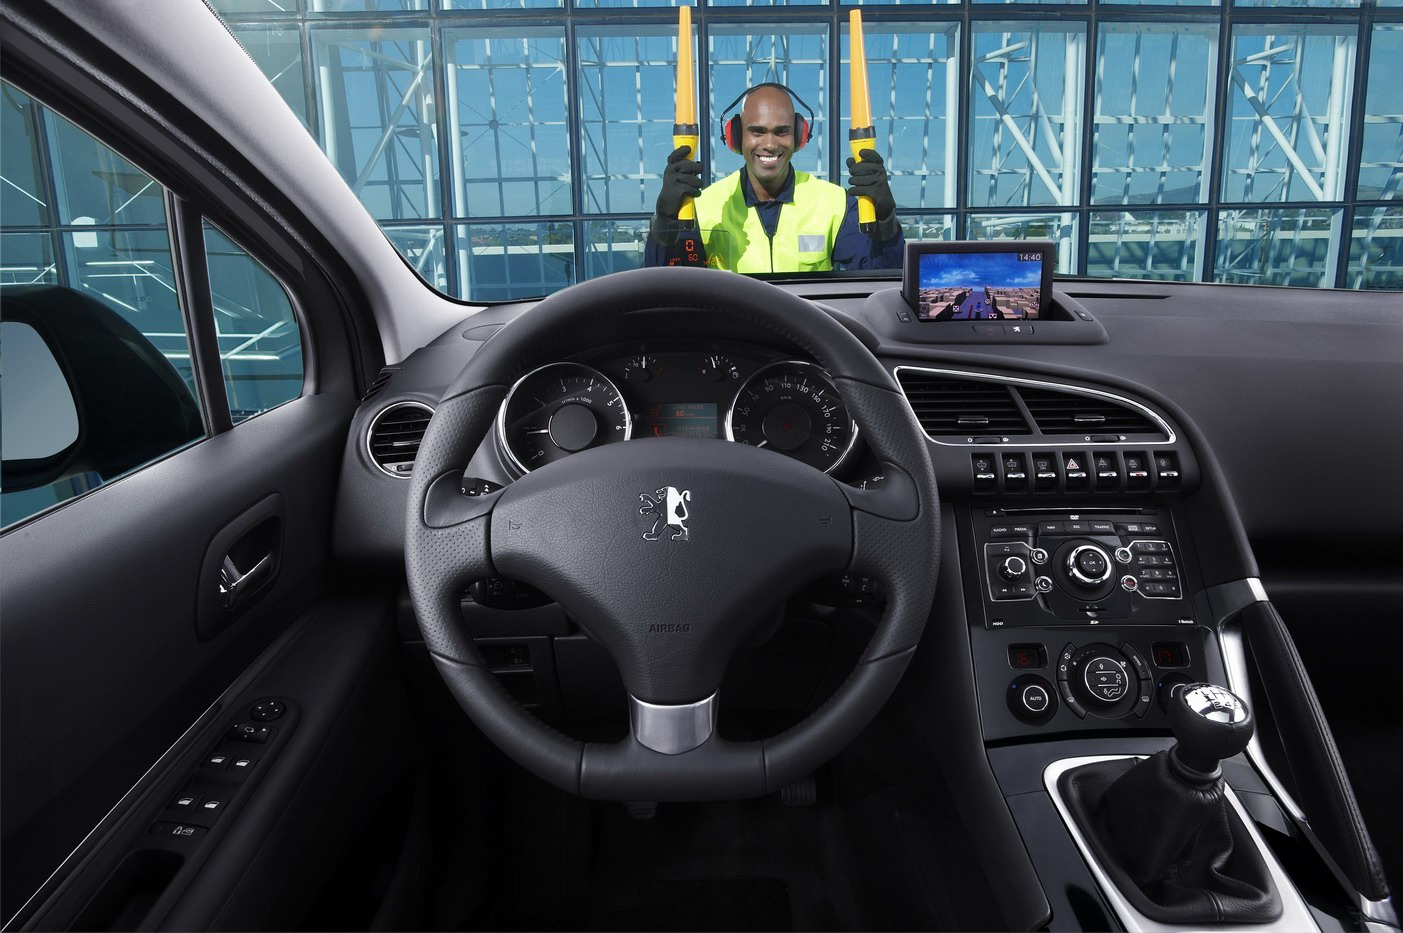 new peugeot 3008 crossover officially revealed details and photos it s your auto world. Black Bedroom Furniture Sets. Home Design Ideas